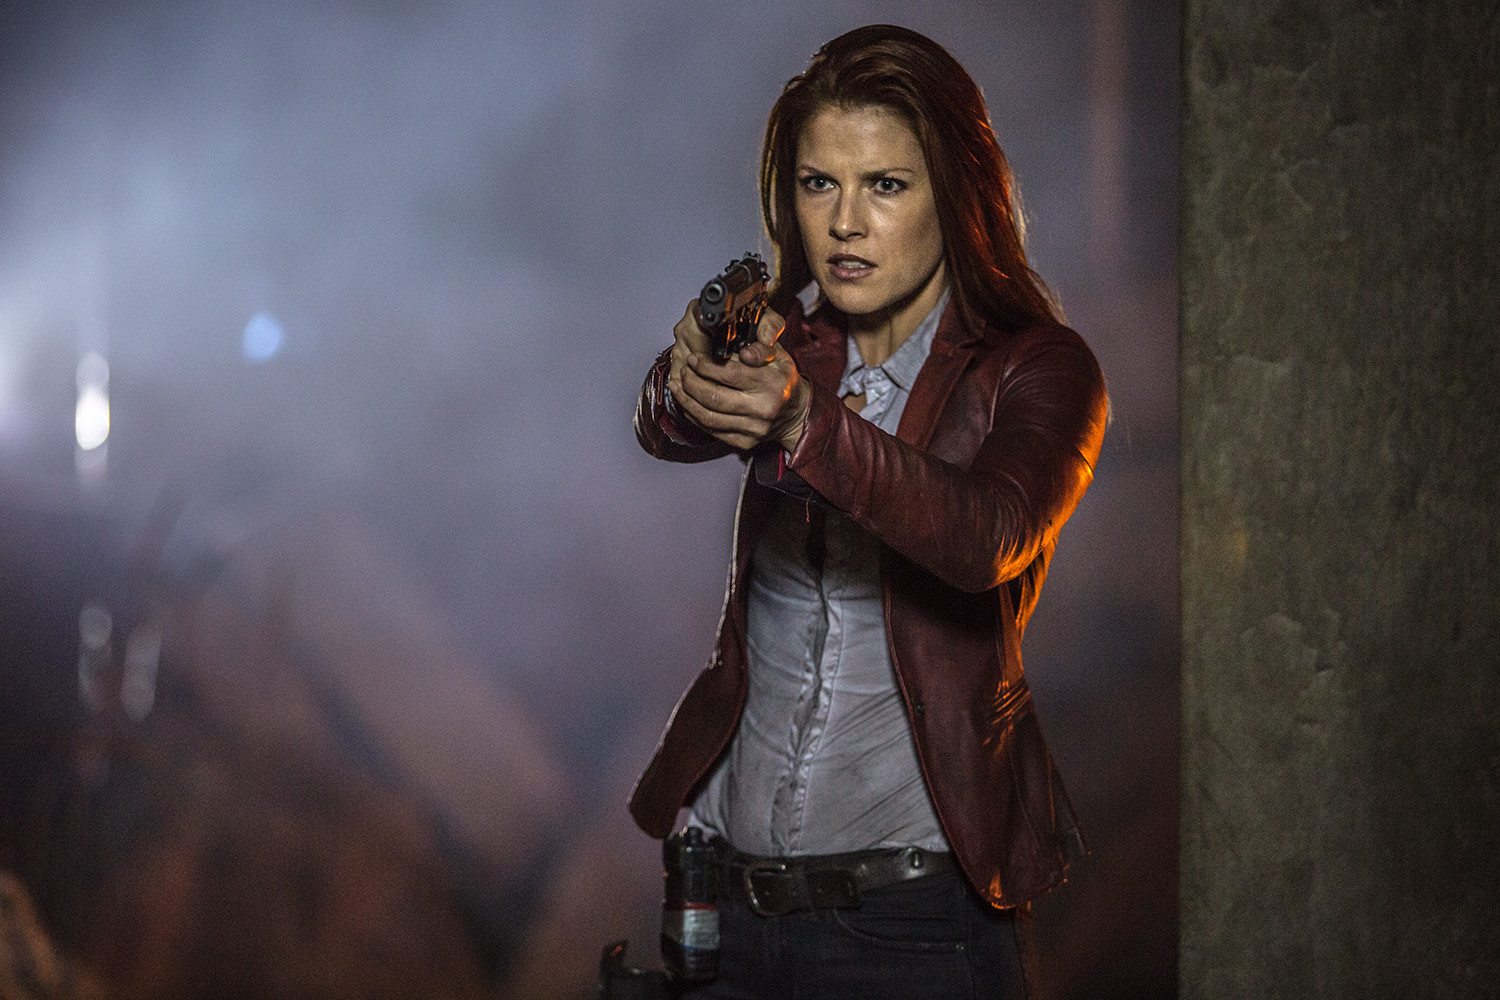 Resident Evil Ali Larter On The Emotional Goodbye To The Series In The Final Chapter